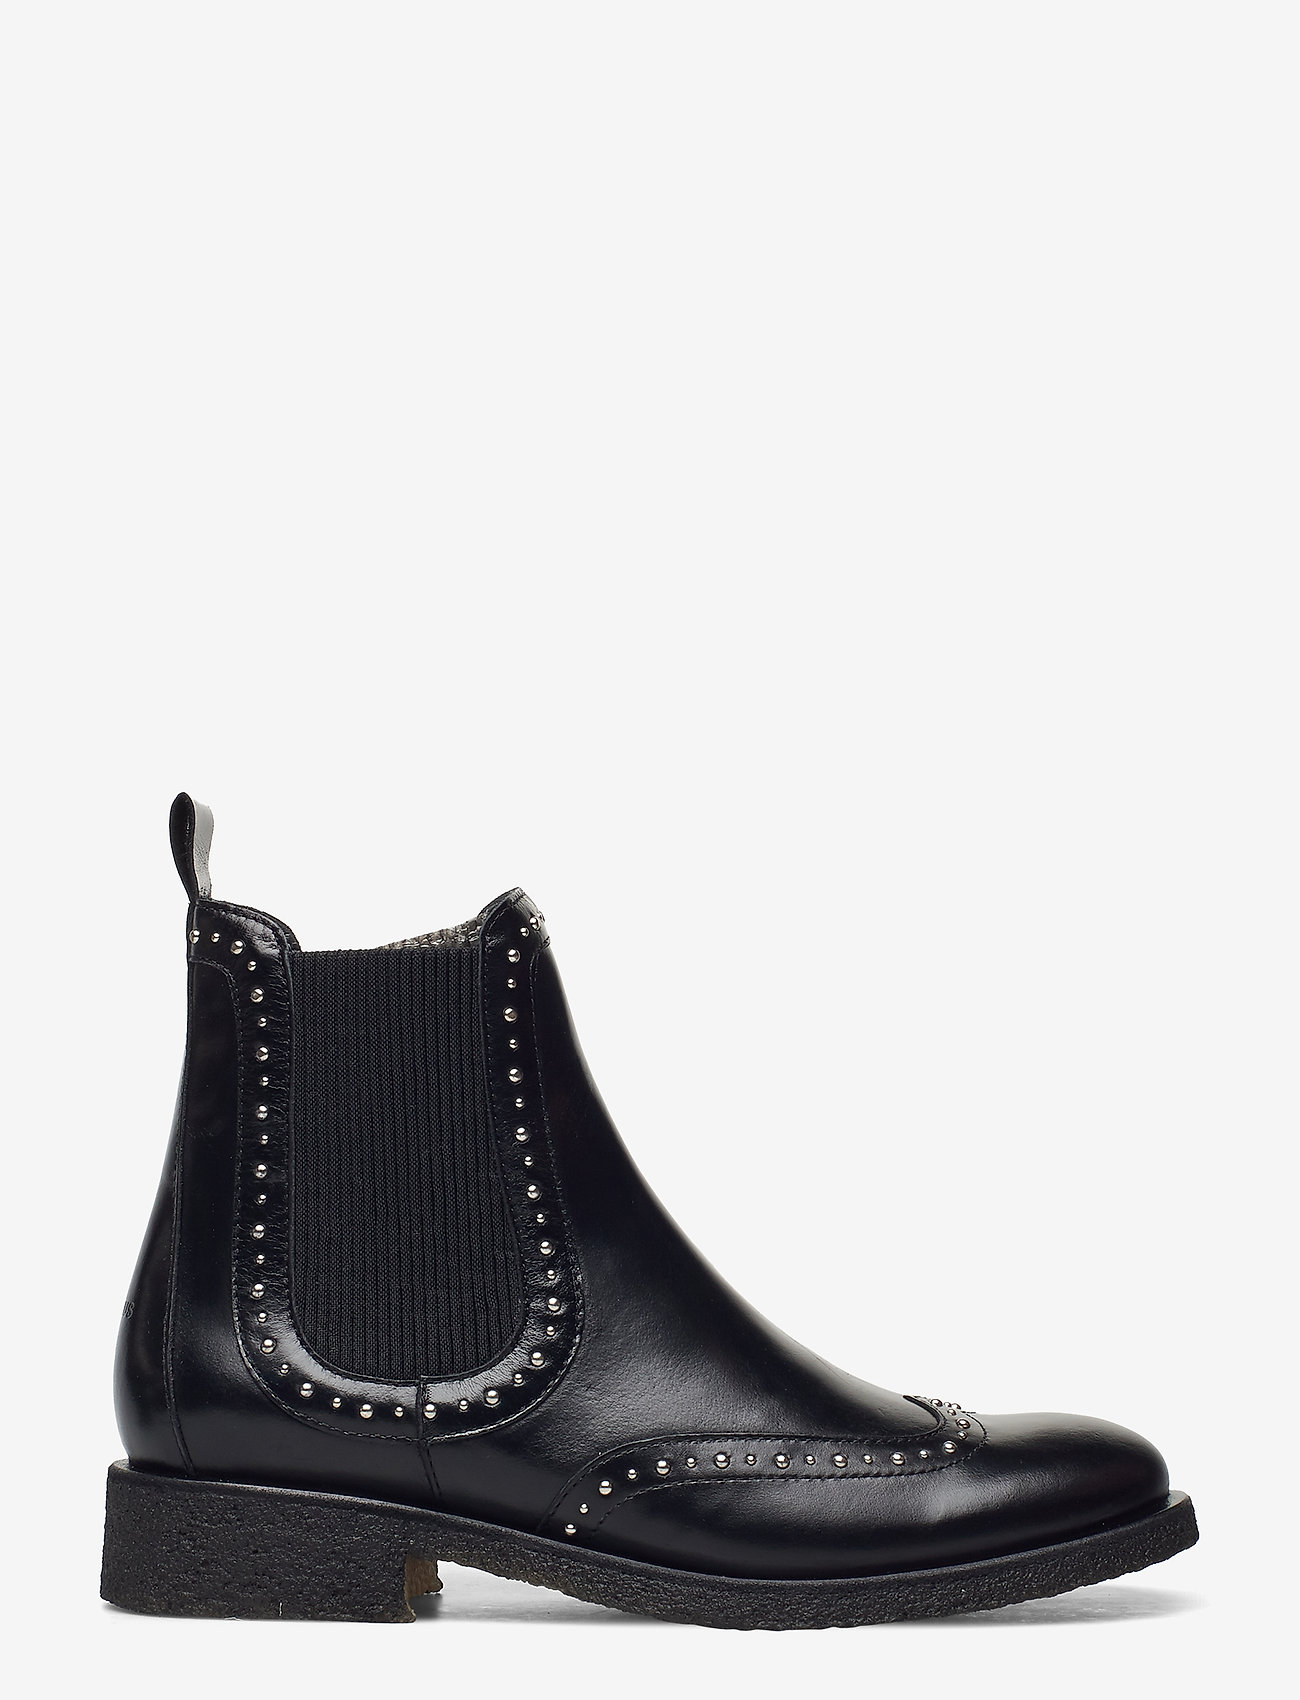 ANGULUS - Booties - flat - with elastic - chelsea boots - 1835/019 black /black - 1